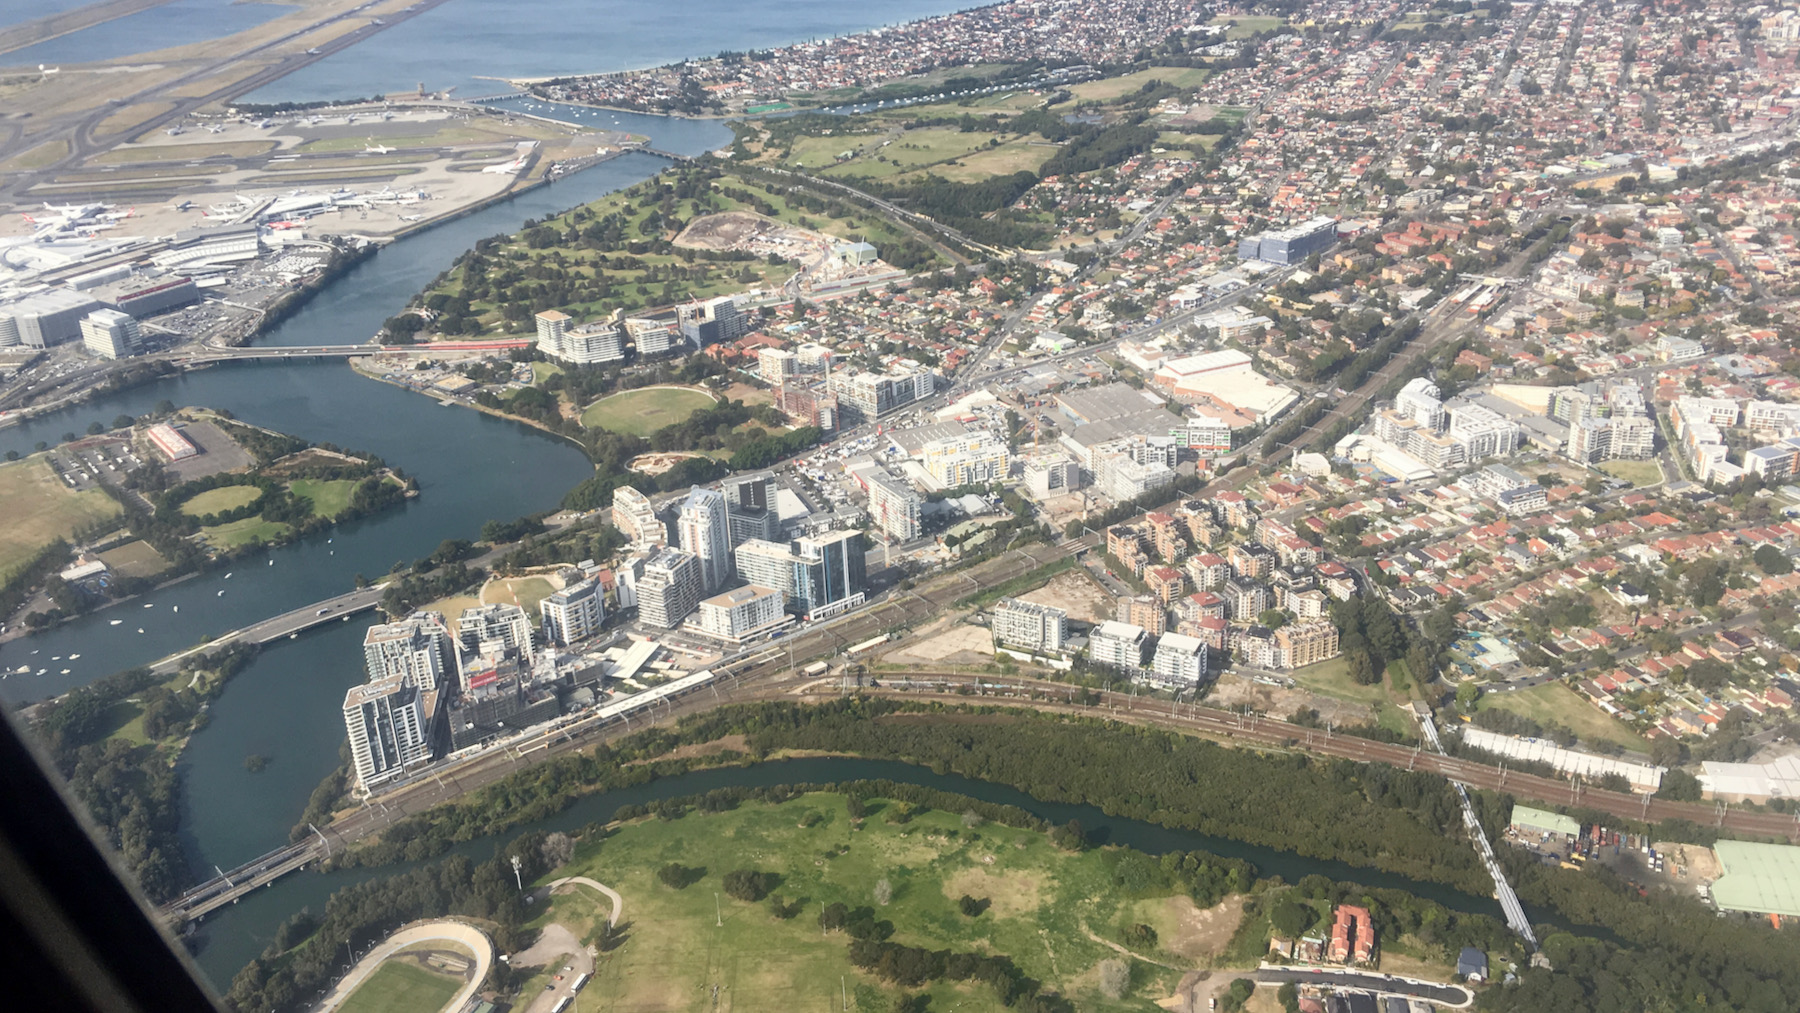 Wolli Creek from the air